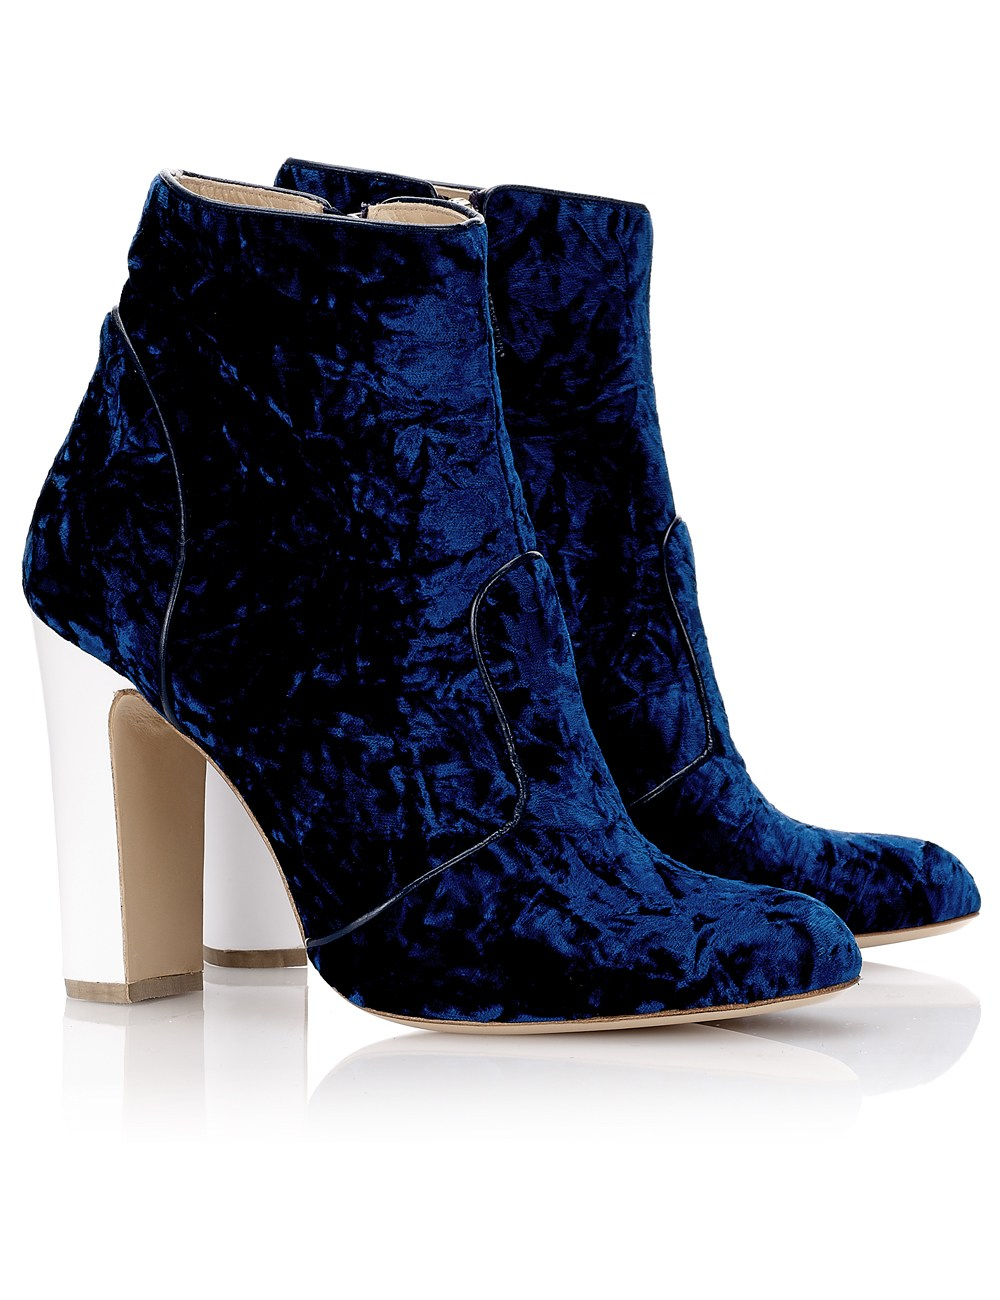 Velvet-Boots3 Top 10 Most Stylish Boot Trends